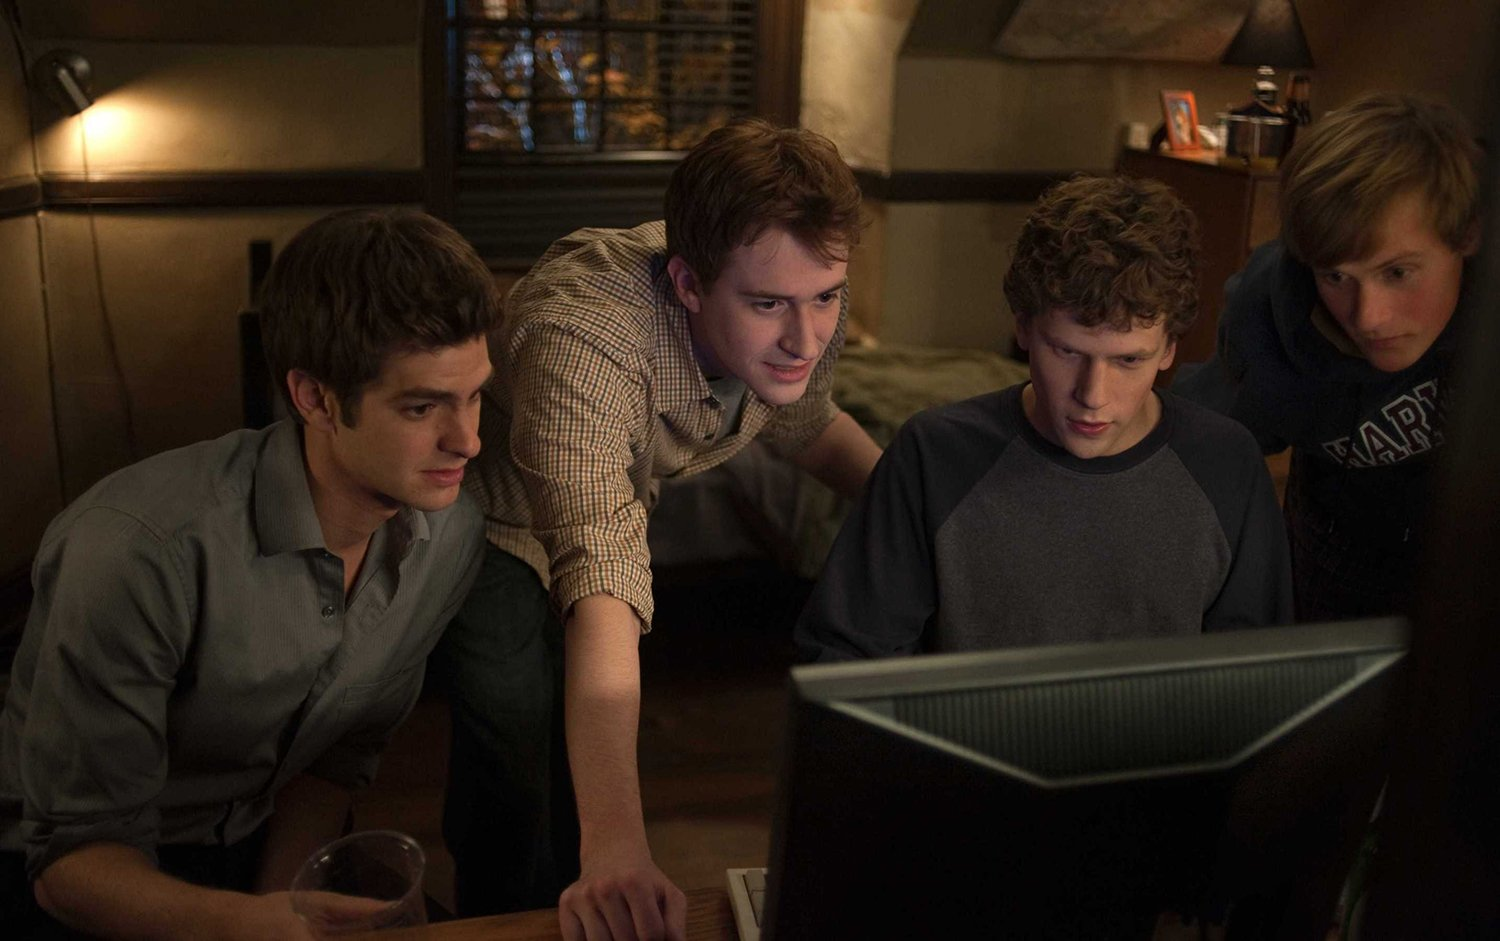 New York Film Festival 2010: The Social Network